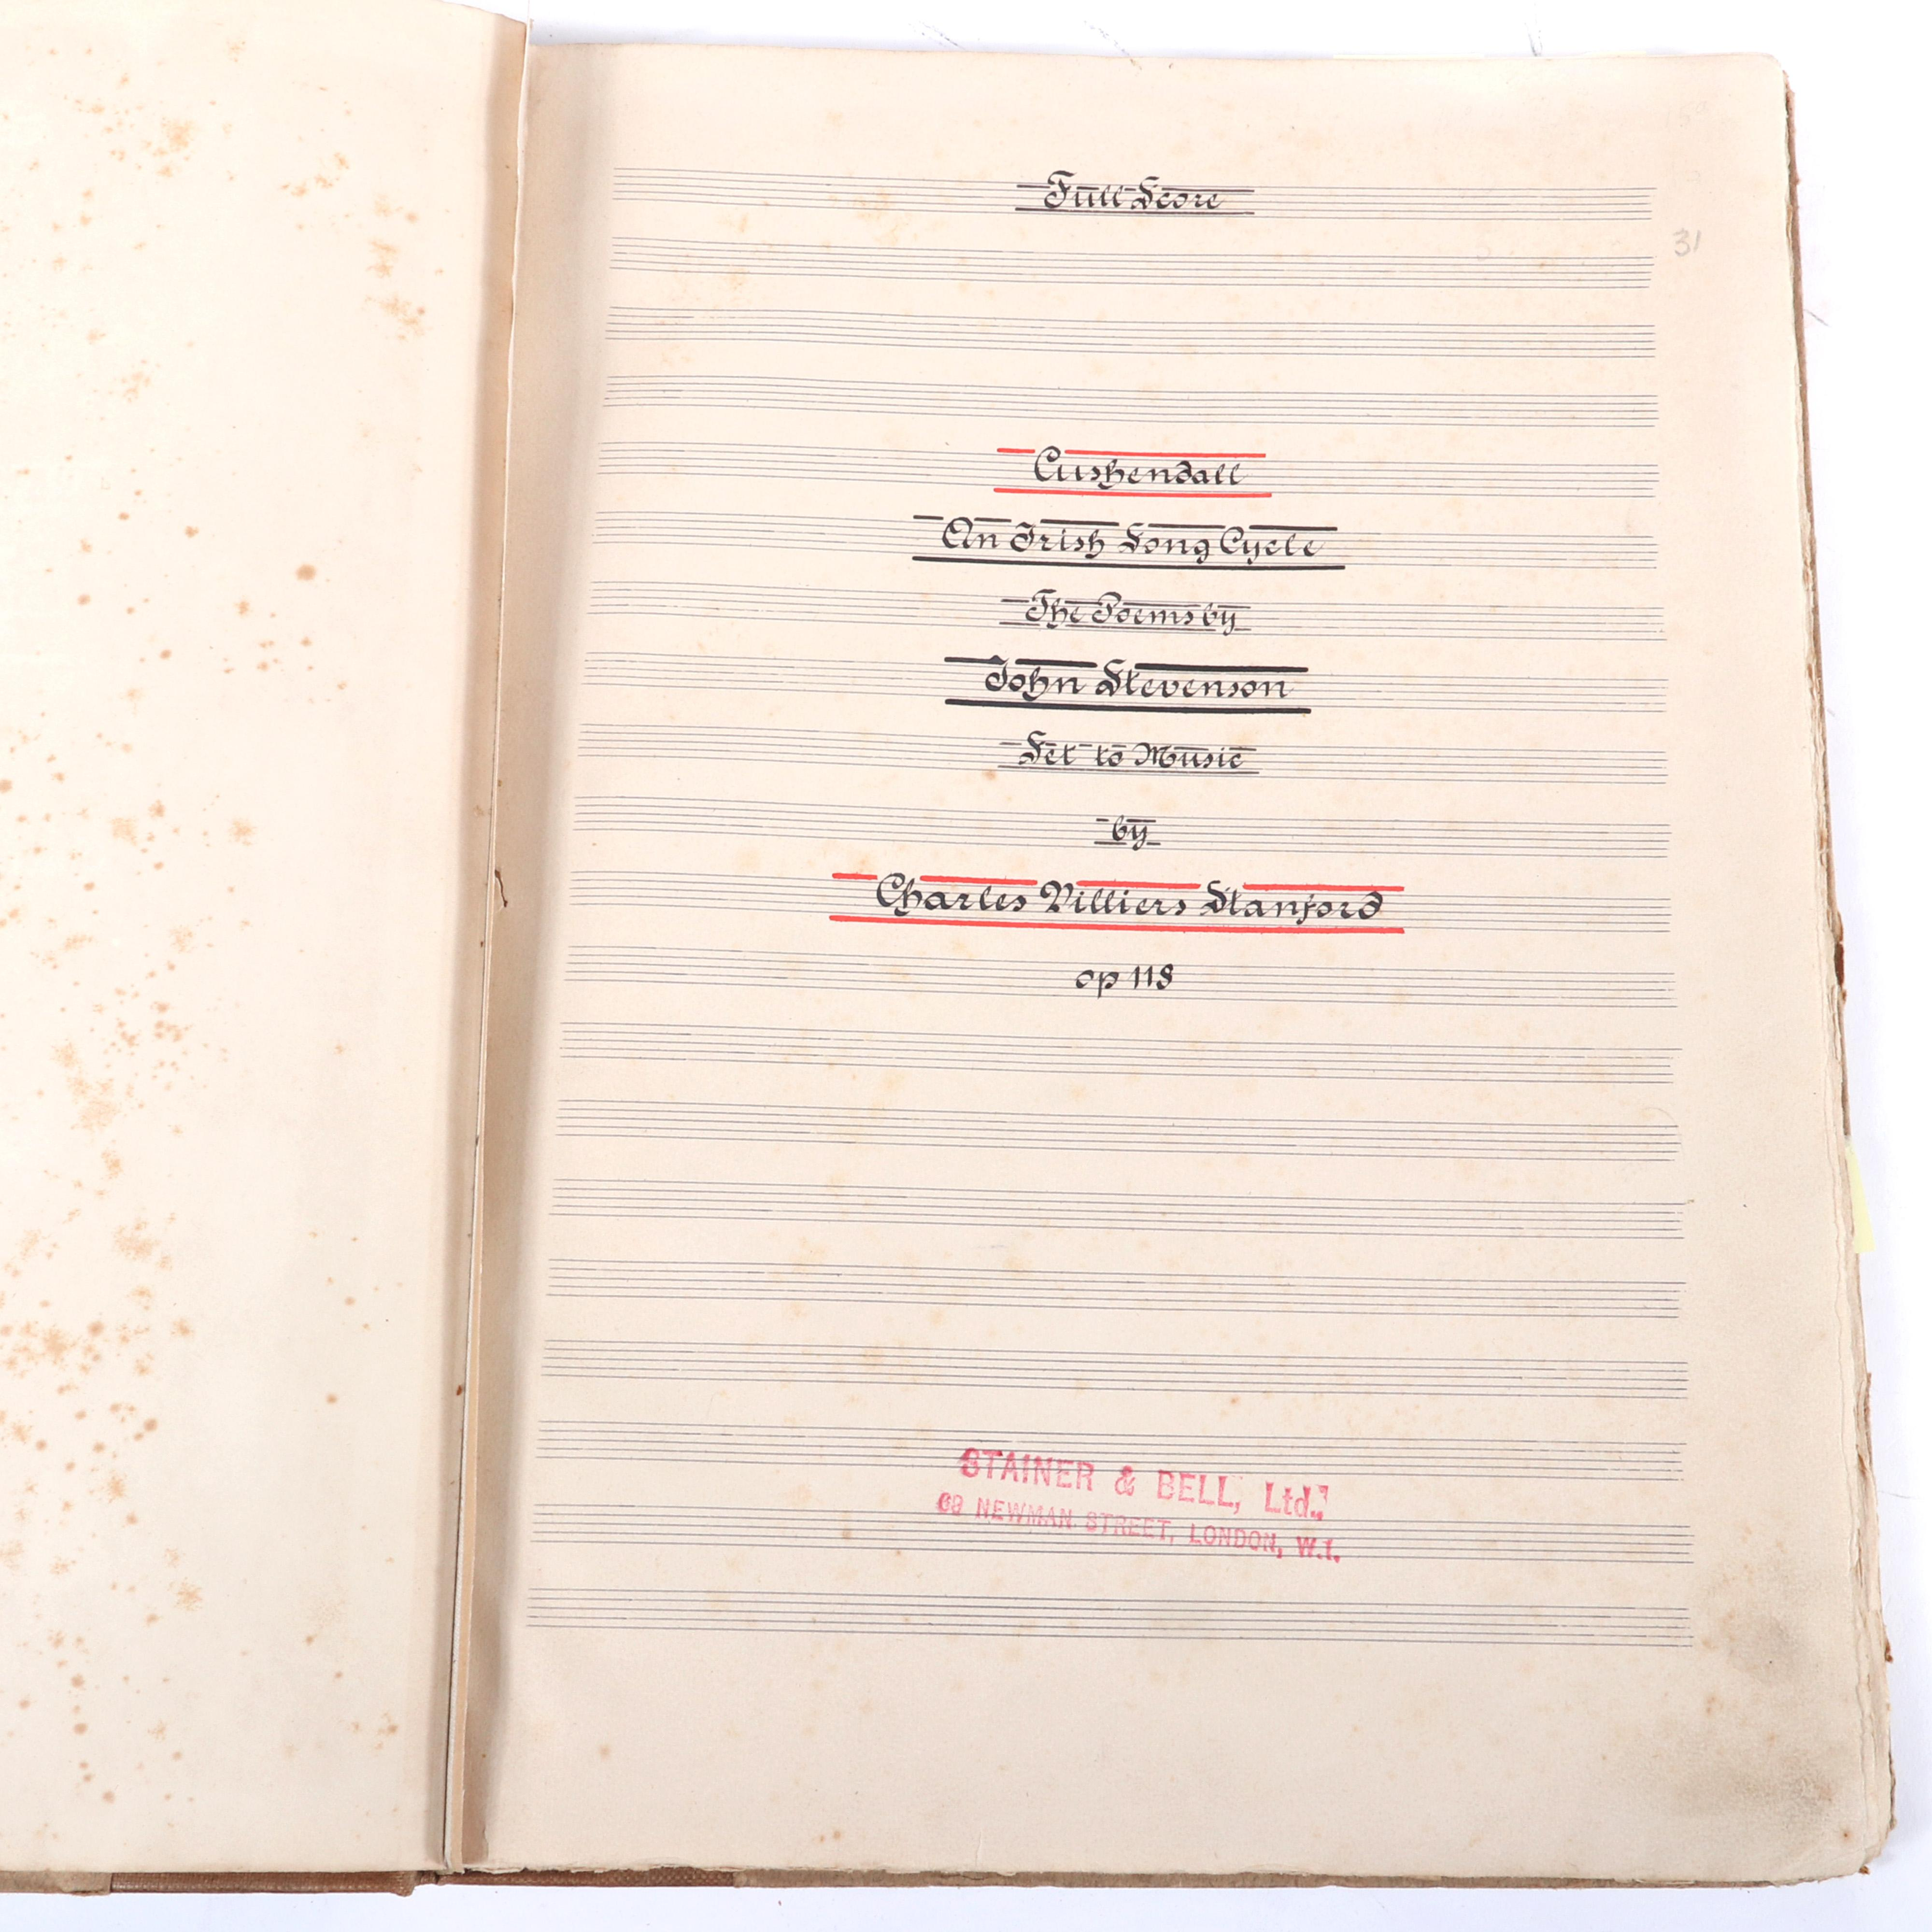 "Charles Villiers Stanford hand-written & scored Cushendall, An Irish Song Cycles, The poems by John Stevenson, OP 118, signed on interior and last page, July 18, 1910. 1/2""H x 10""W x 13 1/4""D"